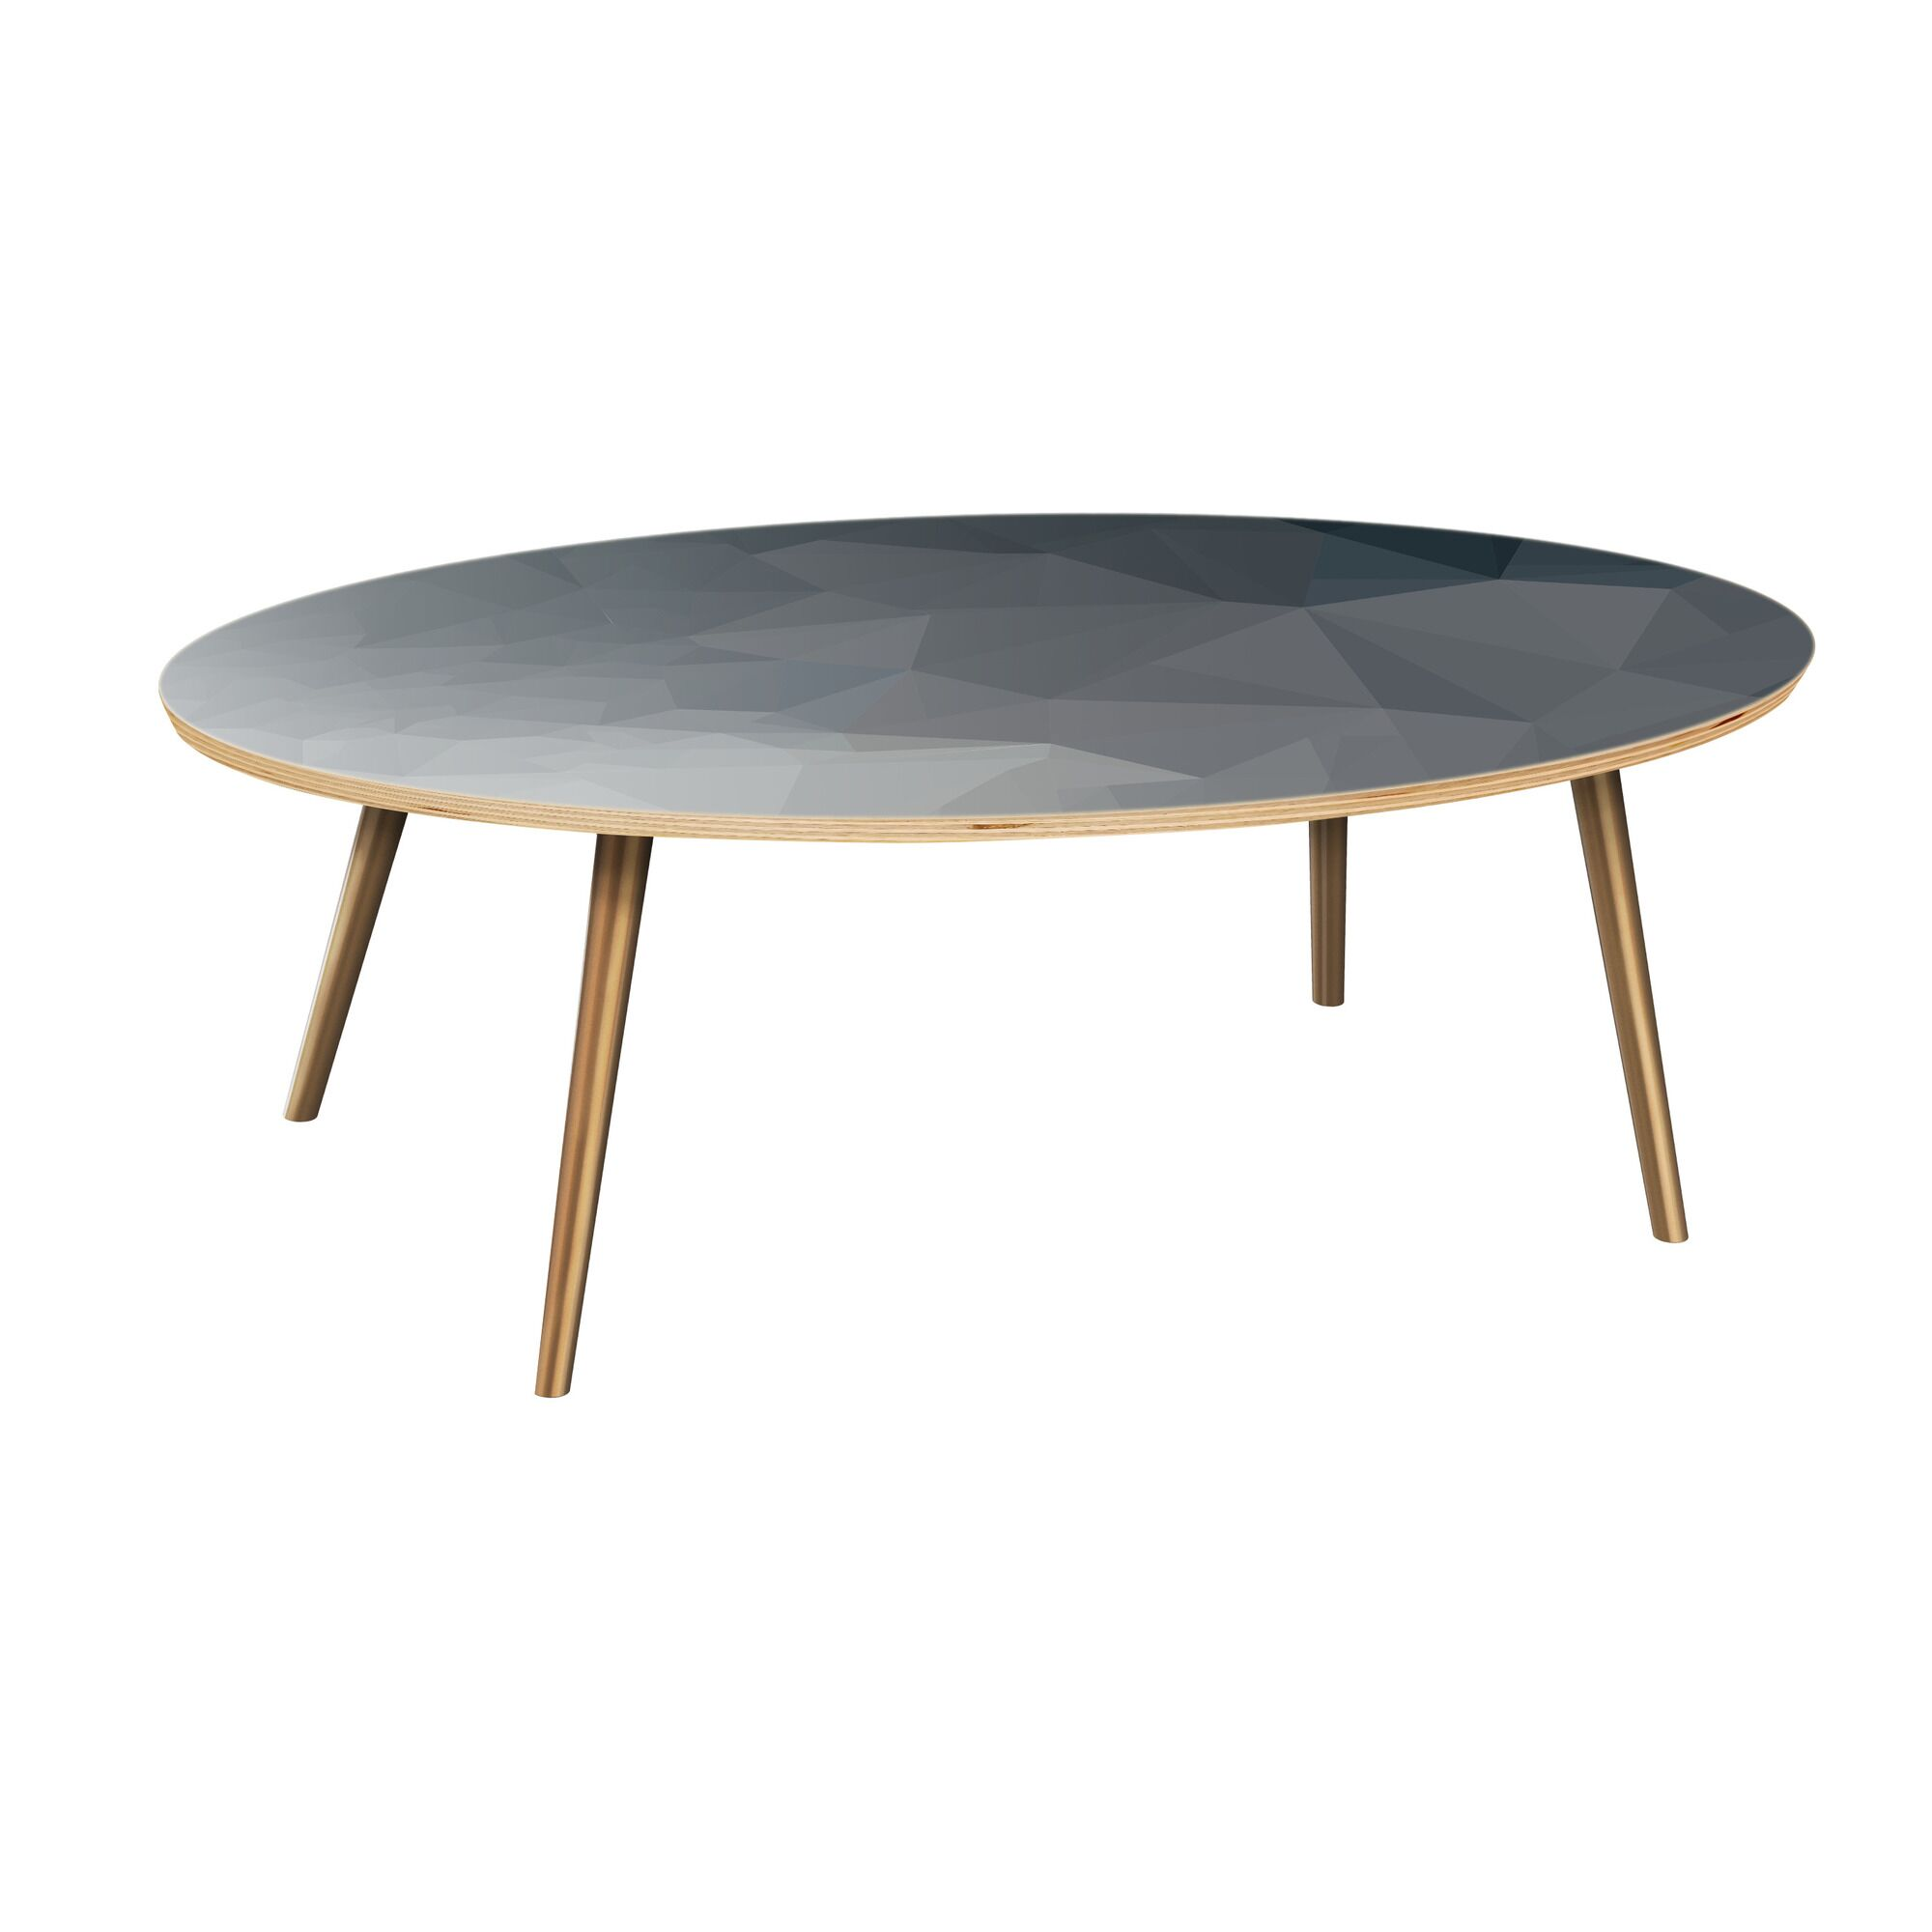 Henkle Coffee Table Table Top Boarder Color: Natural, Table Base Color: Brass, Table Top Color: Blue